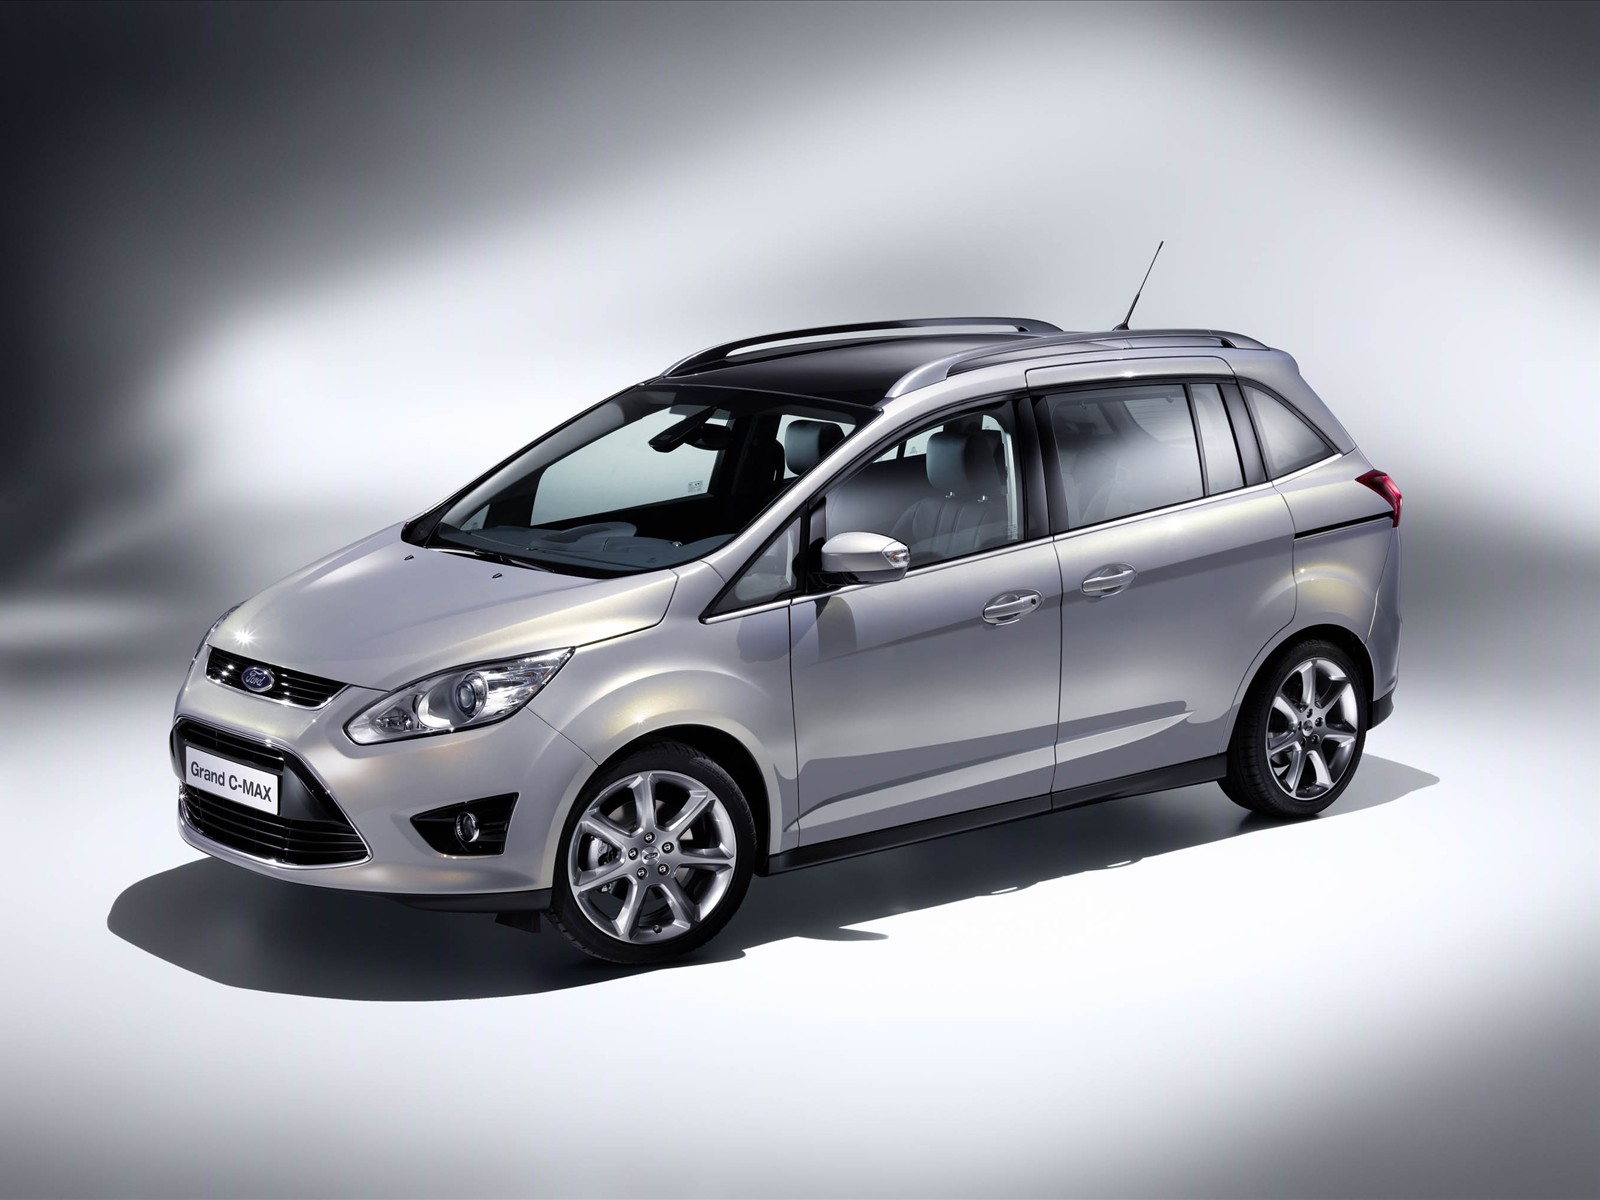 Ford C Max >> Car Pictures: Ford Grand C-MAX 2011